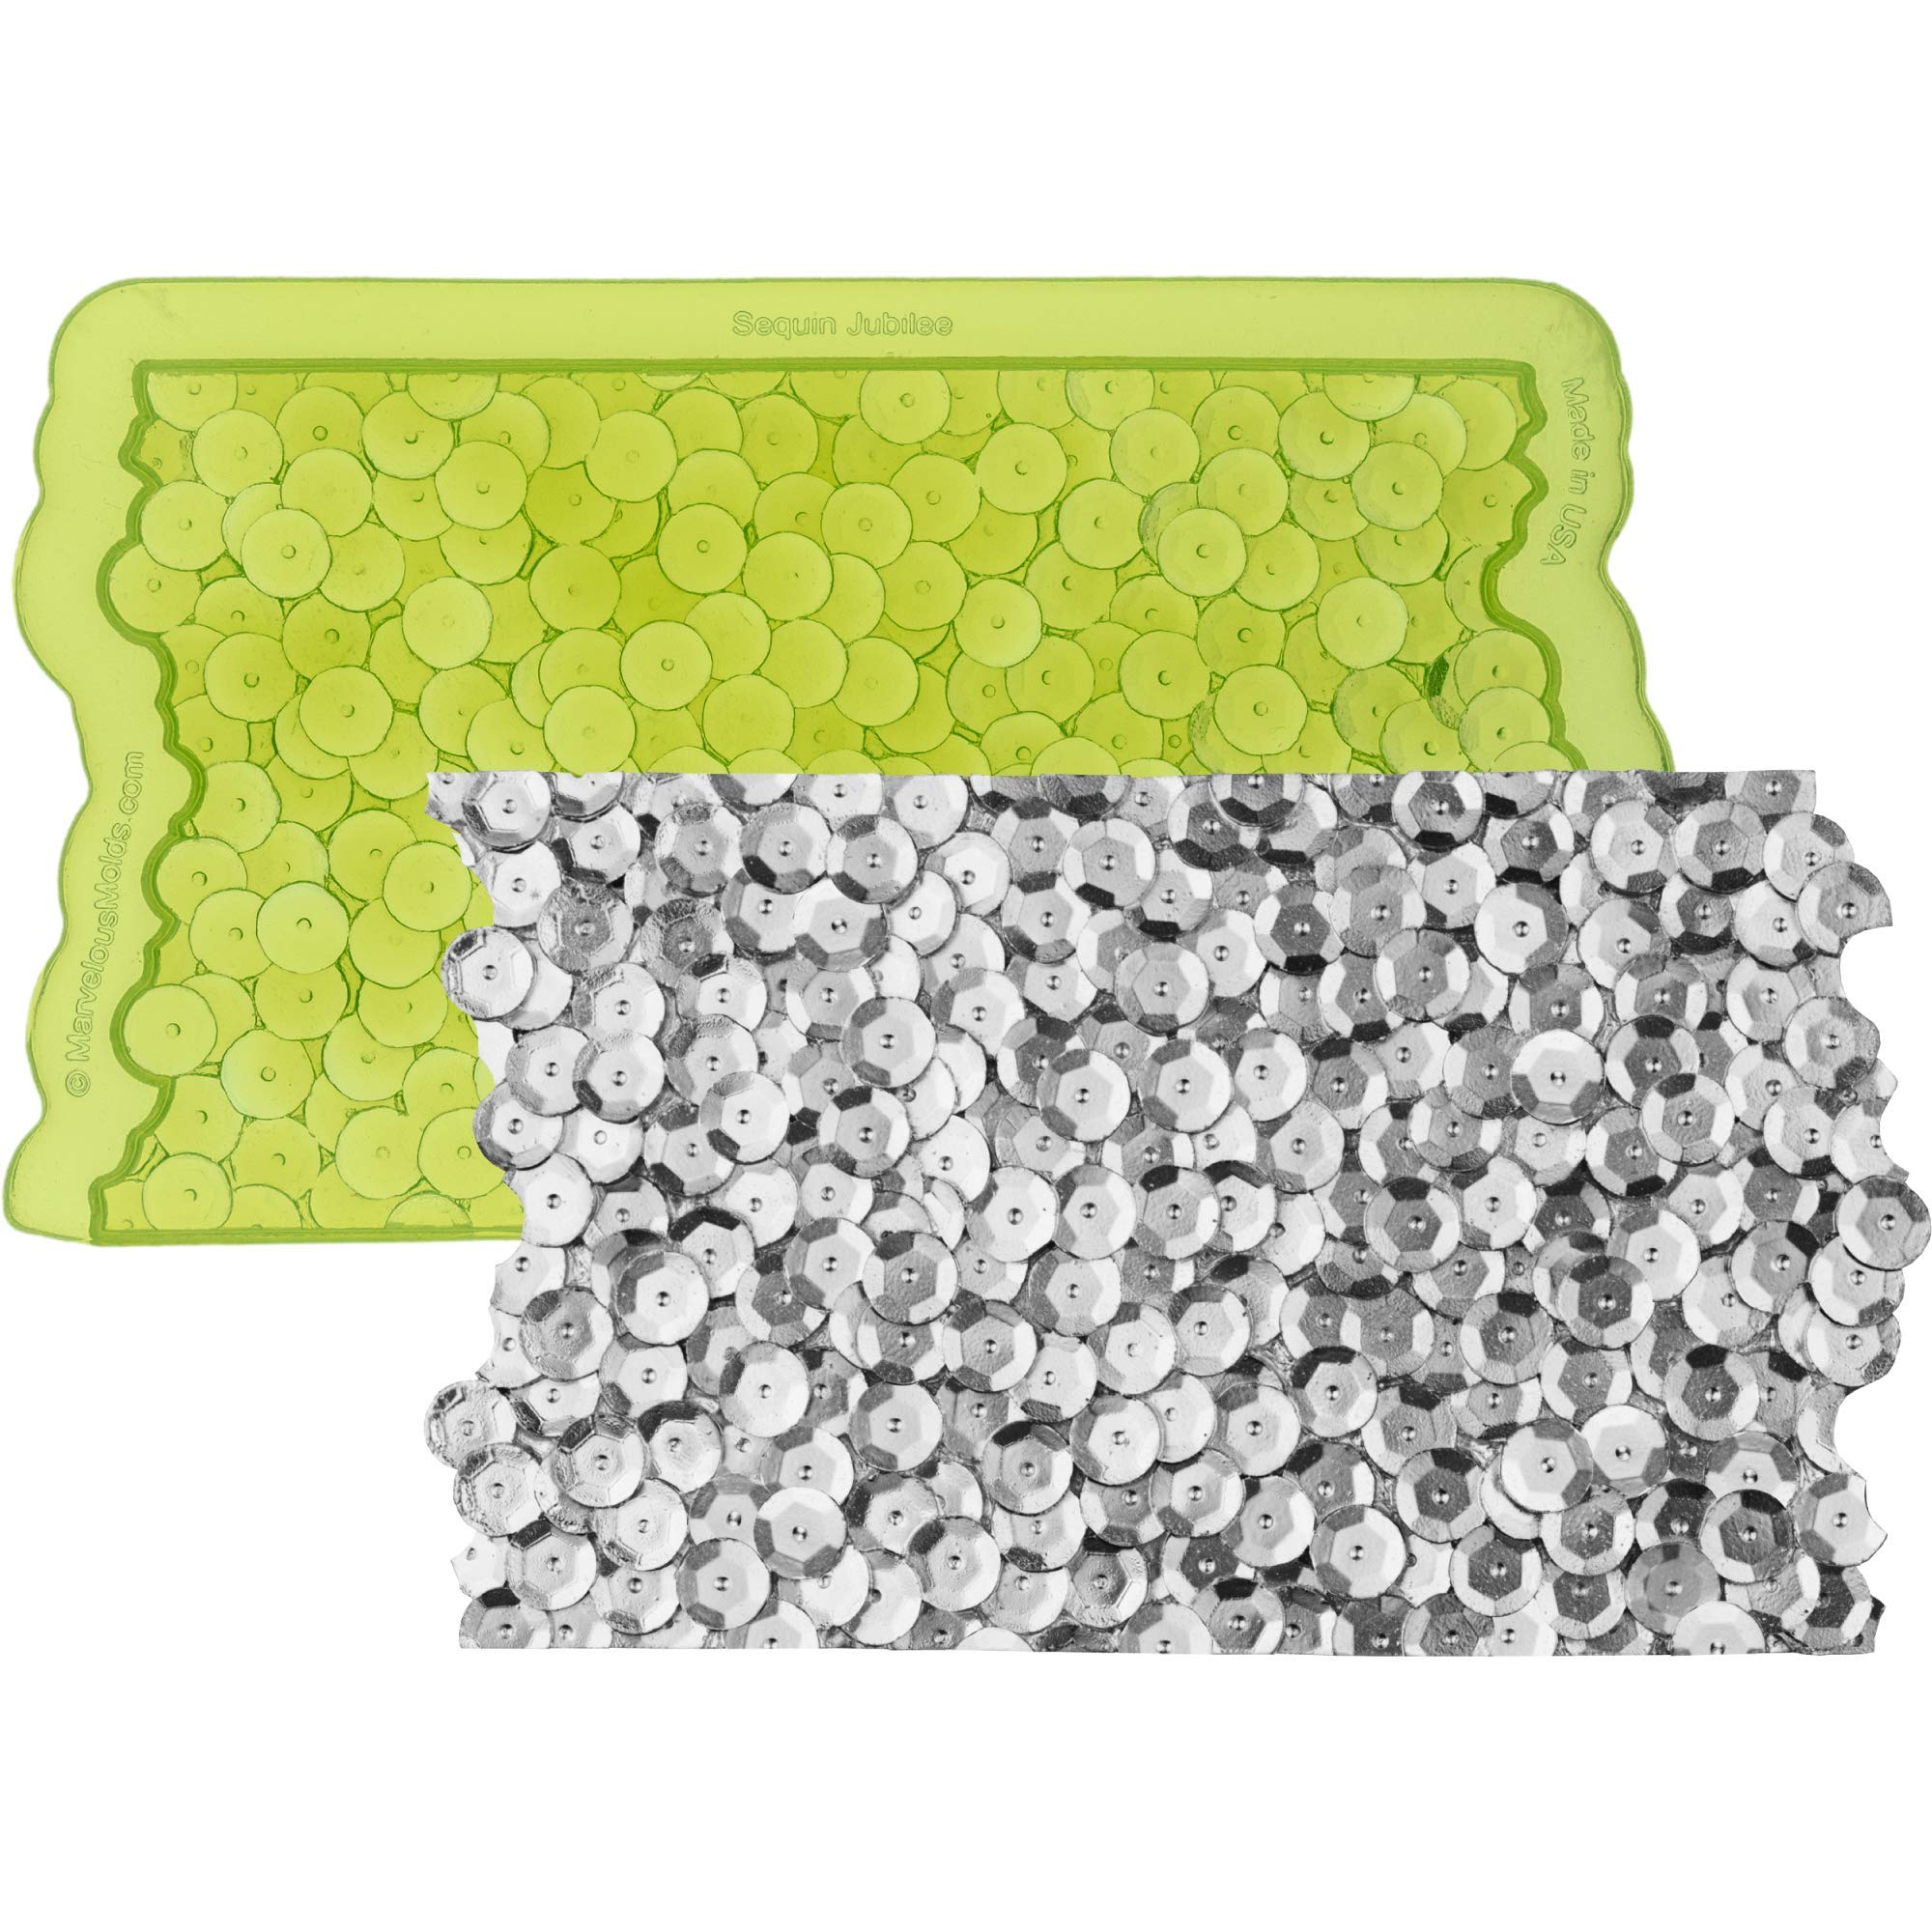 Marvelous Molds Sequin Jubilee Simpress Silicone Mold | Cake Decorating with Fondant and Gumpaste